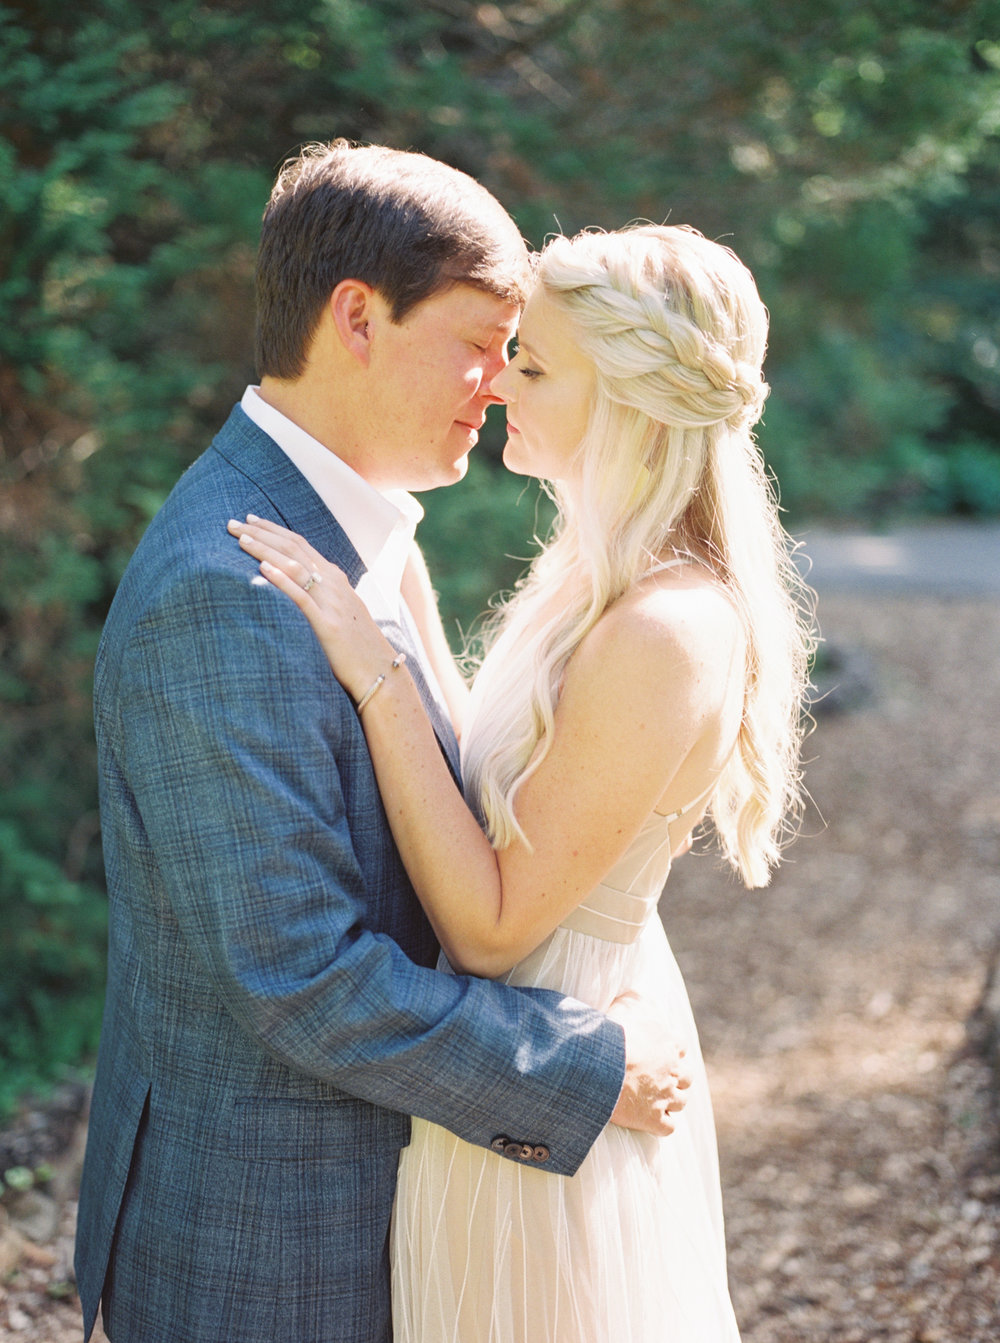 Erin_Johnny_Engagement_Dunaway_Gardens_Georgia_Film_Fallen_Photography-43.JPG